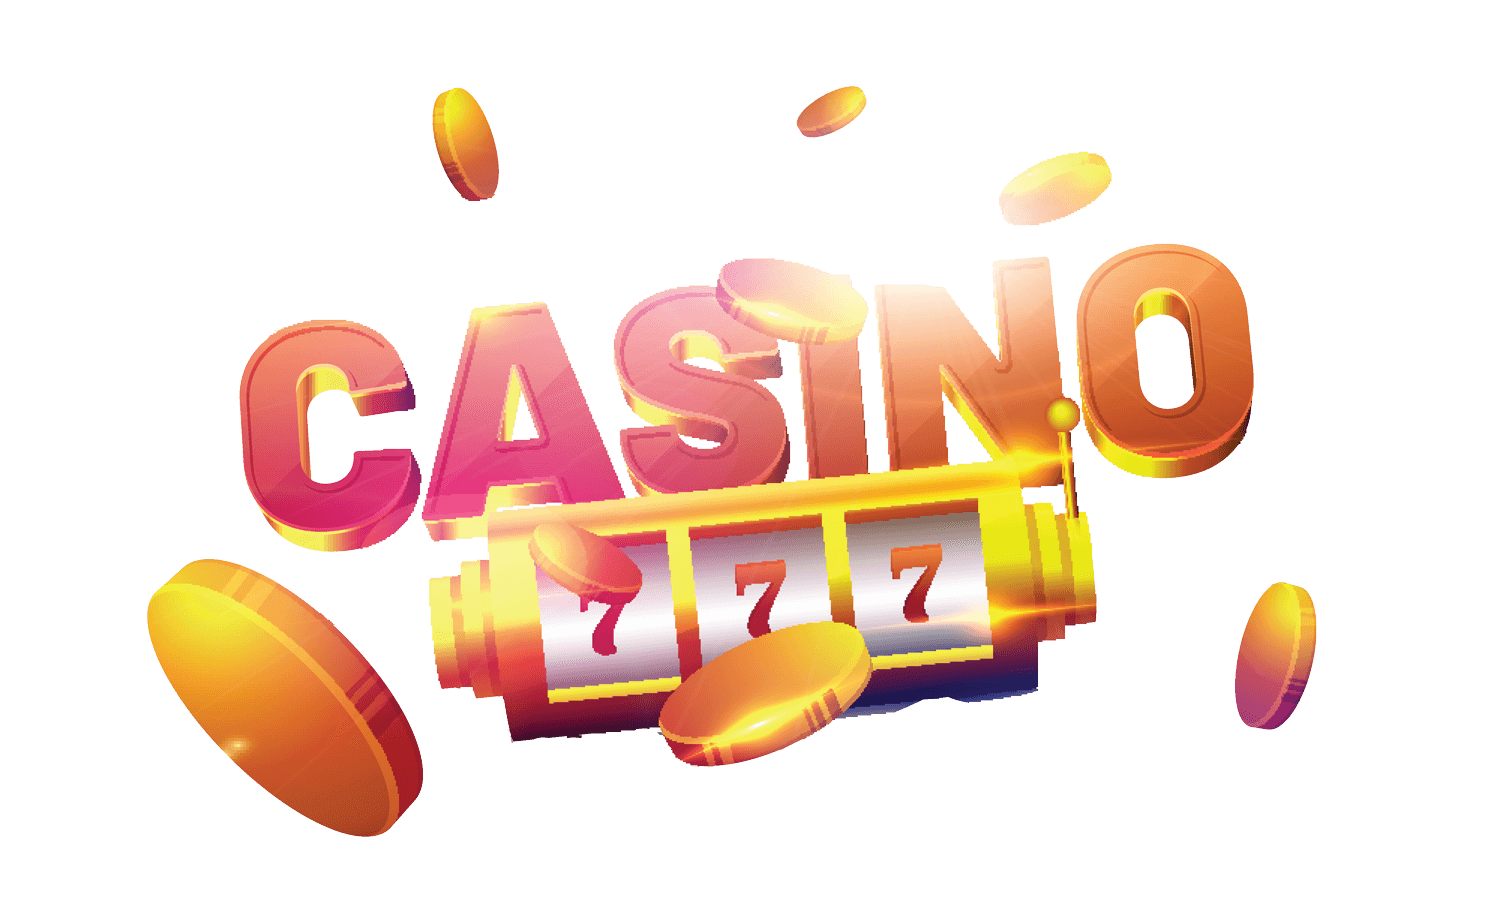 An image of the 777 casino image